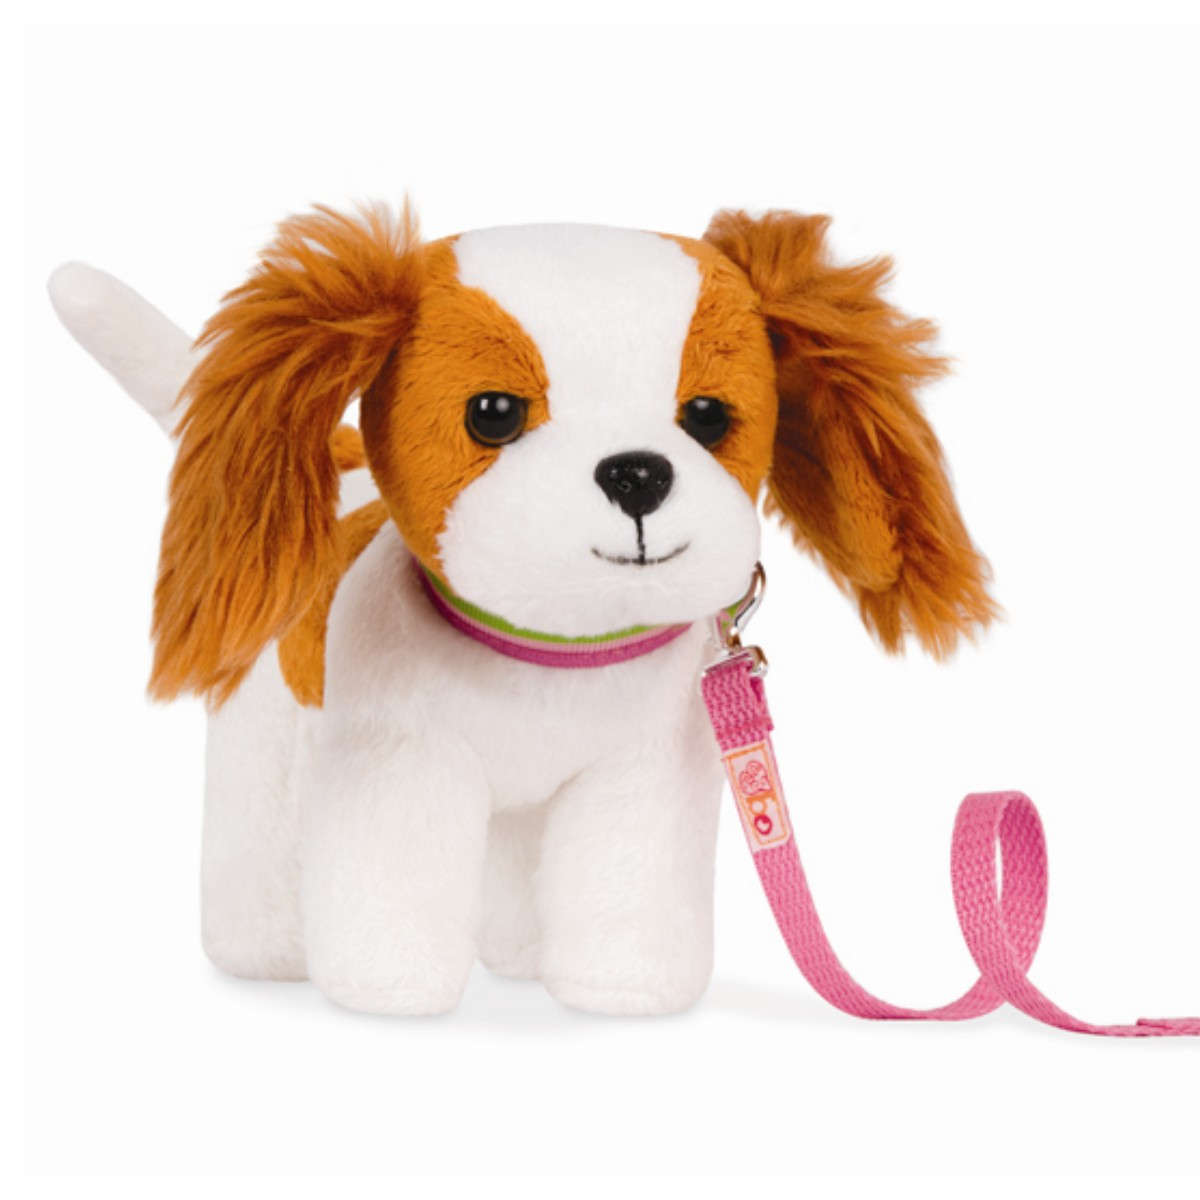 Our Generation - Posable King Charles Spaniel Pup (735187)